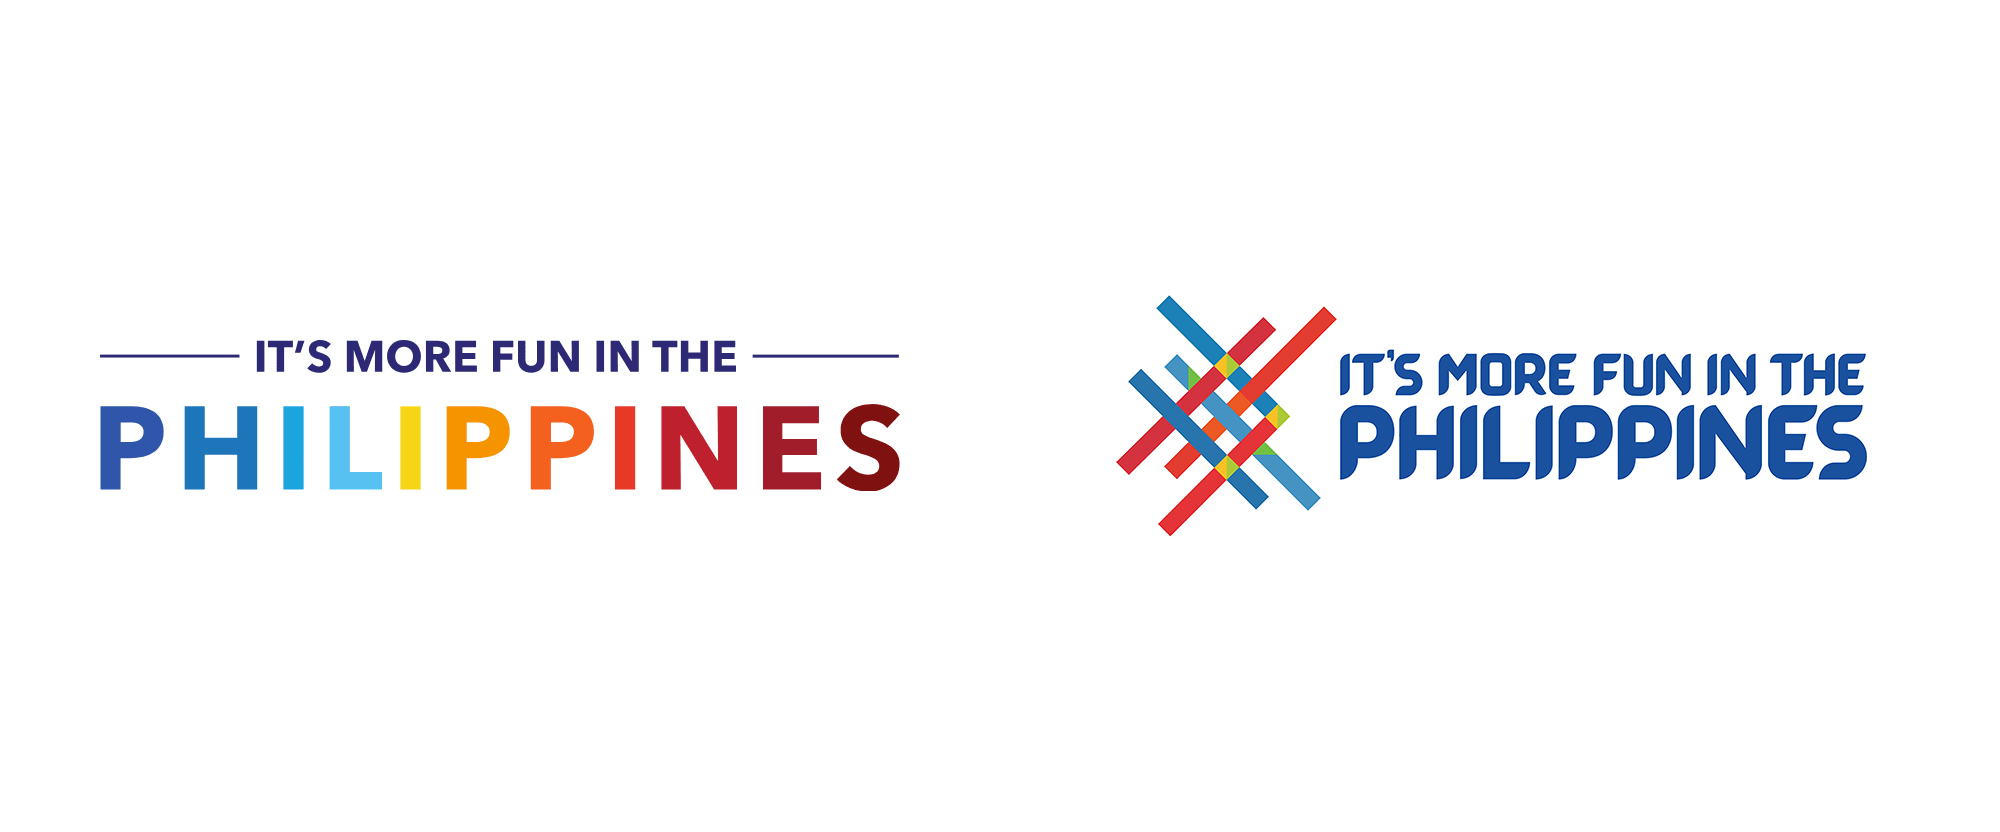 New Logo and Font for It's More Fun in the Philippines by BBDO Guerrero